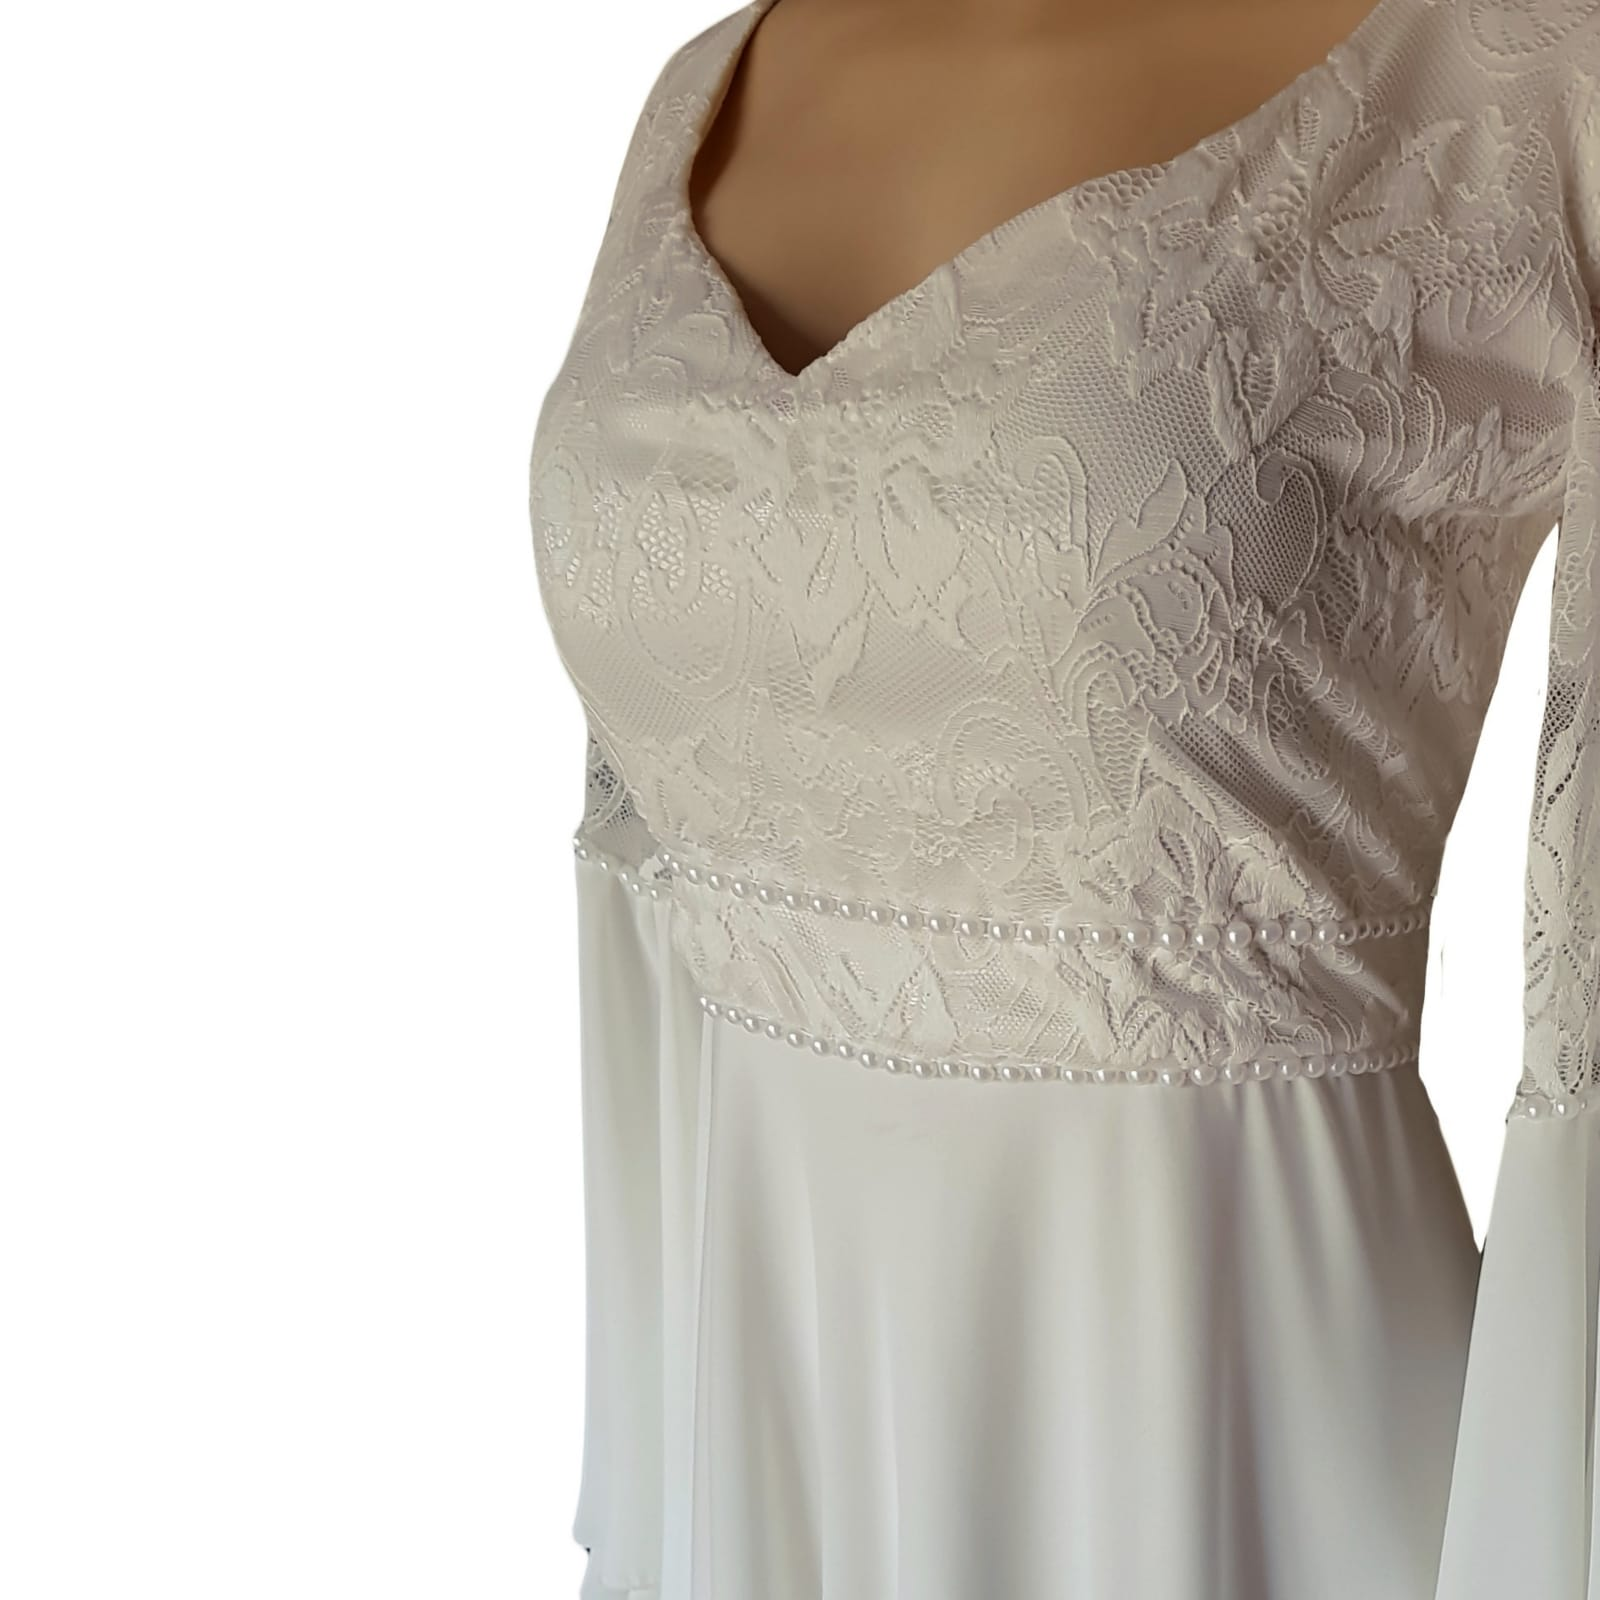 White flowy lace bodice wedding dress 8 white flowy lace bodice wedding dress. With bell sleeve and train. Sleeve and belt detailed with pearls. Stunnning wedding dress awesome for a beach wedding.